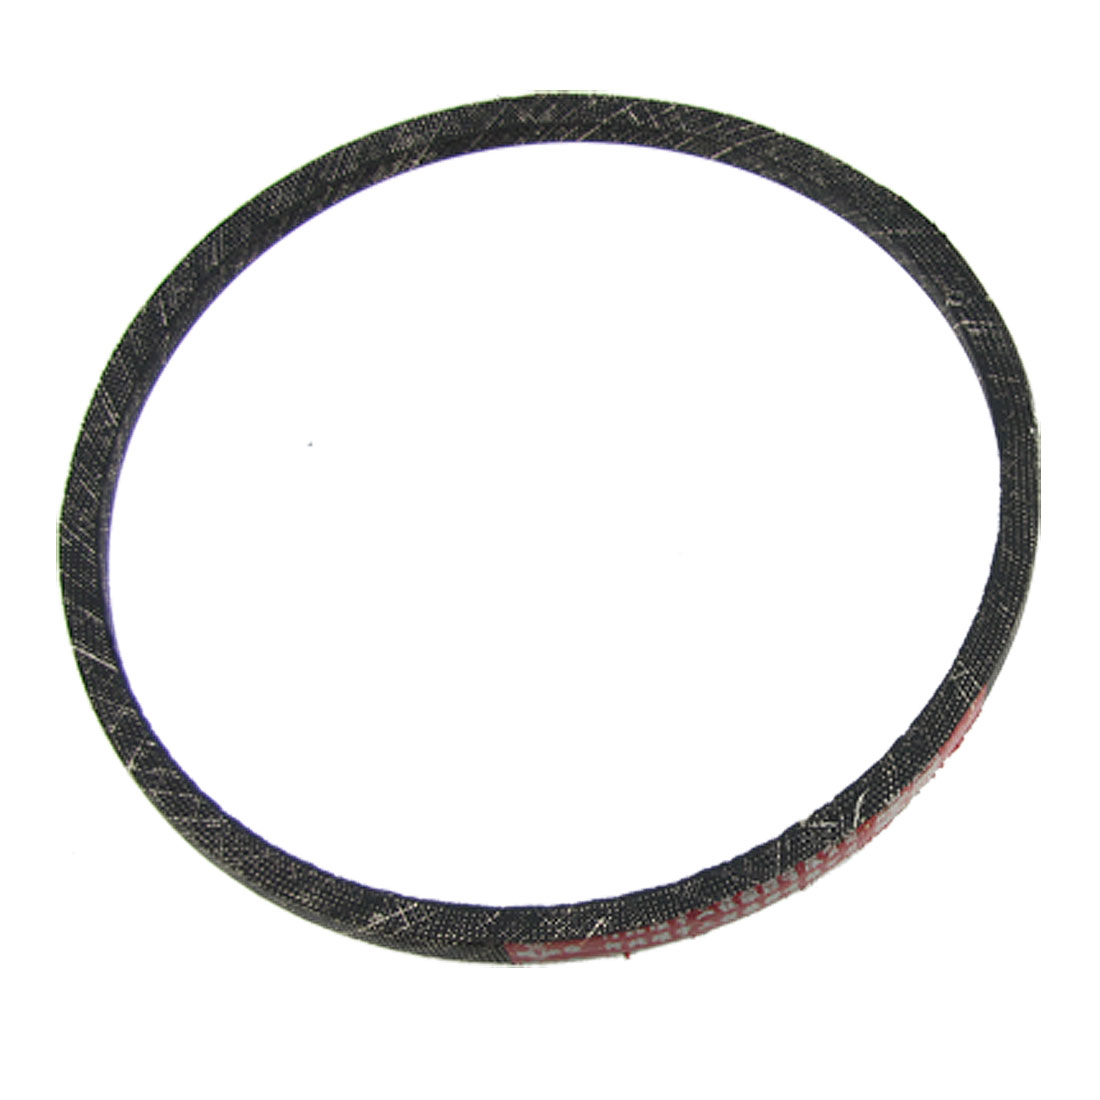 "Washer Washing Machine Replacement 520mm 20 9/16"" Inner Girth V Type Belt"